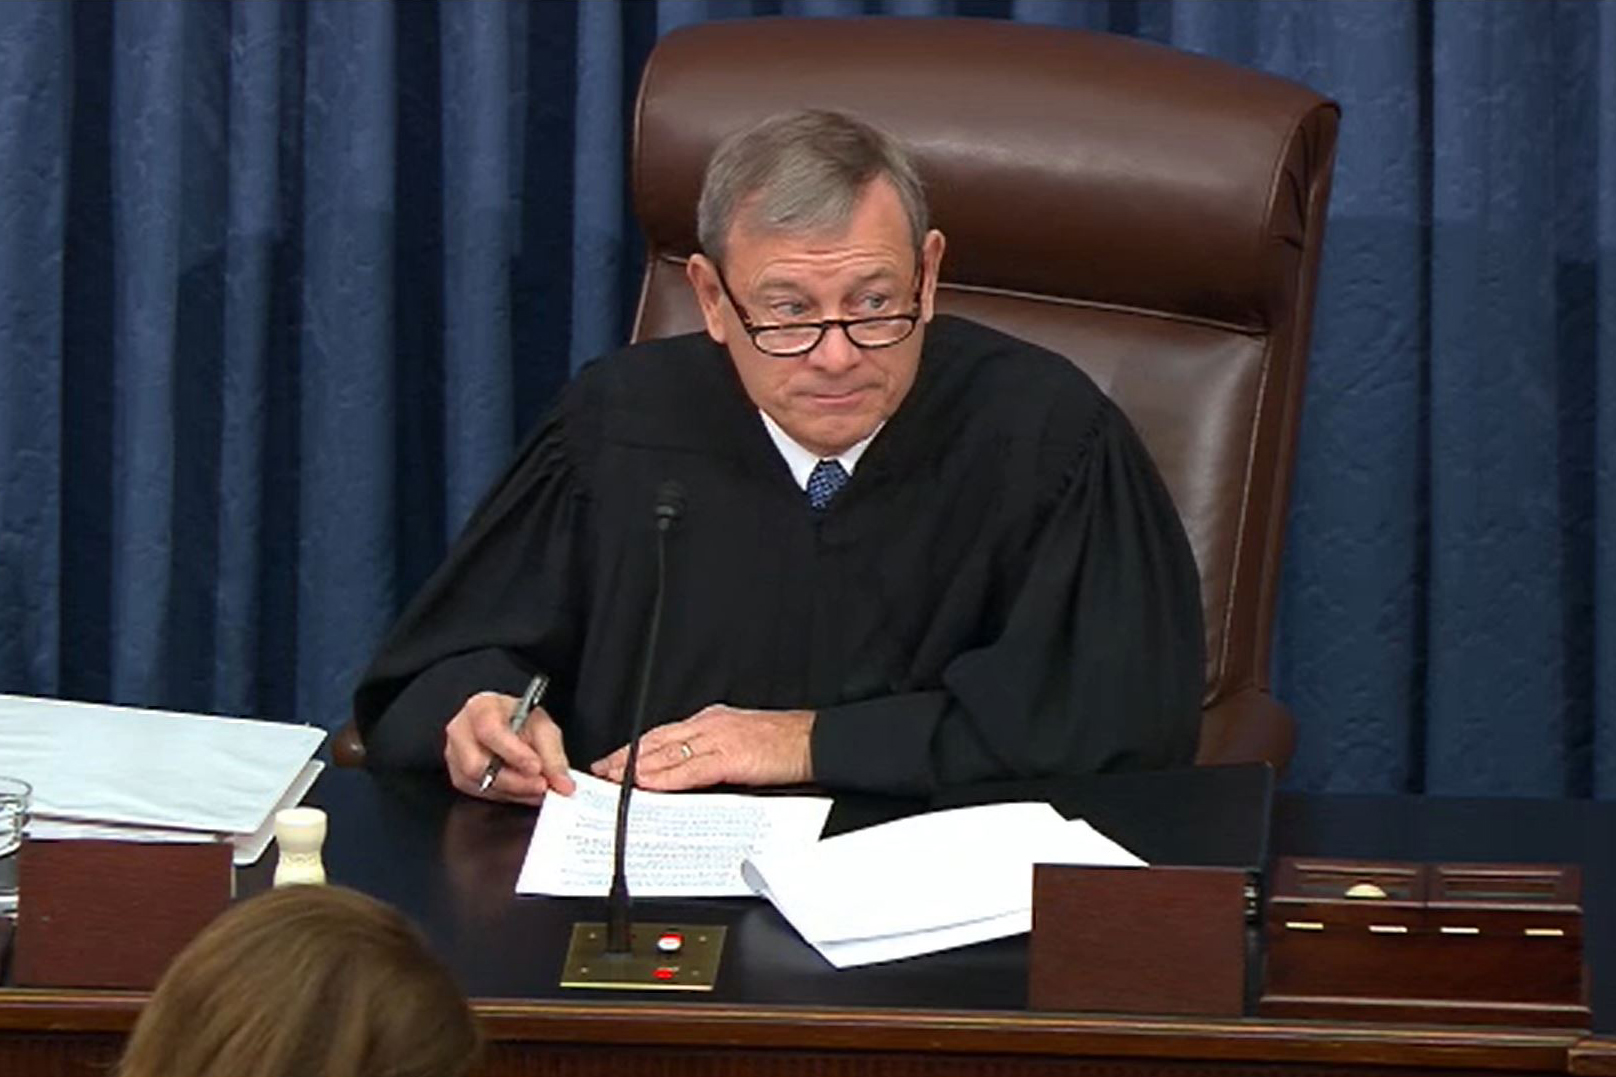 Justice Roberts presides over the Senate trial on January 21.